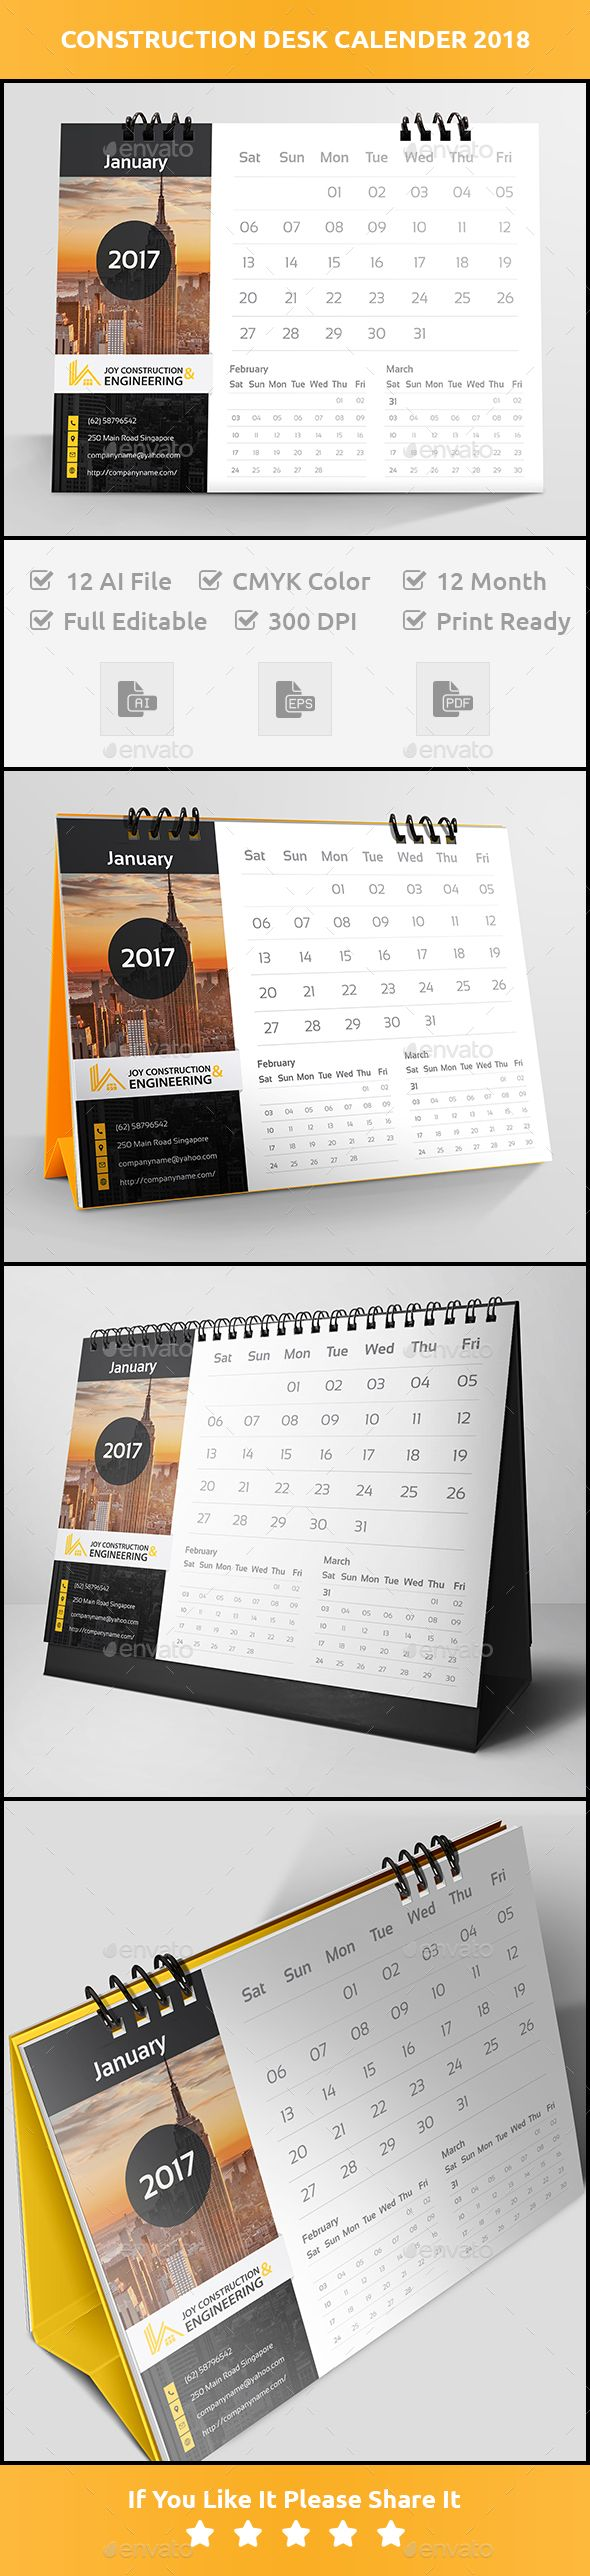 This is a Construction desk calender 2018. All elements are easily editable and customizable.Features:12 AI, 12 EPS, 12 PDF file S